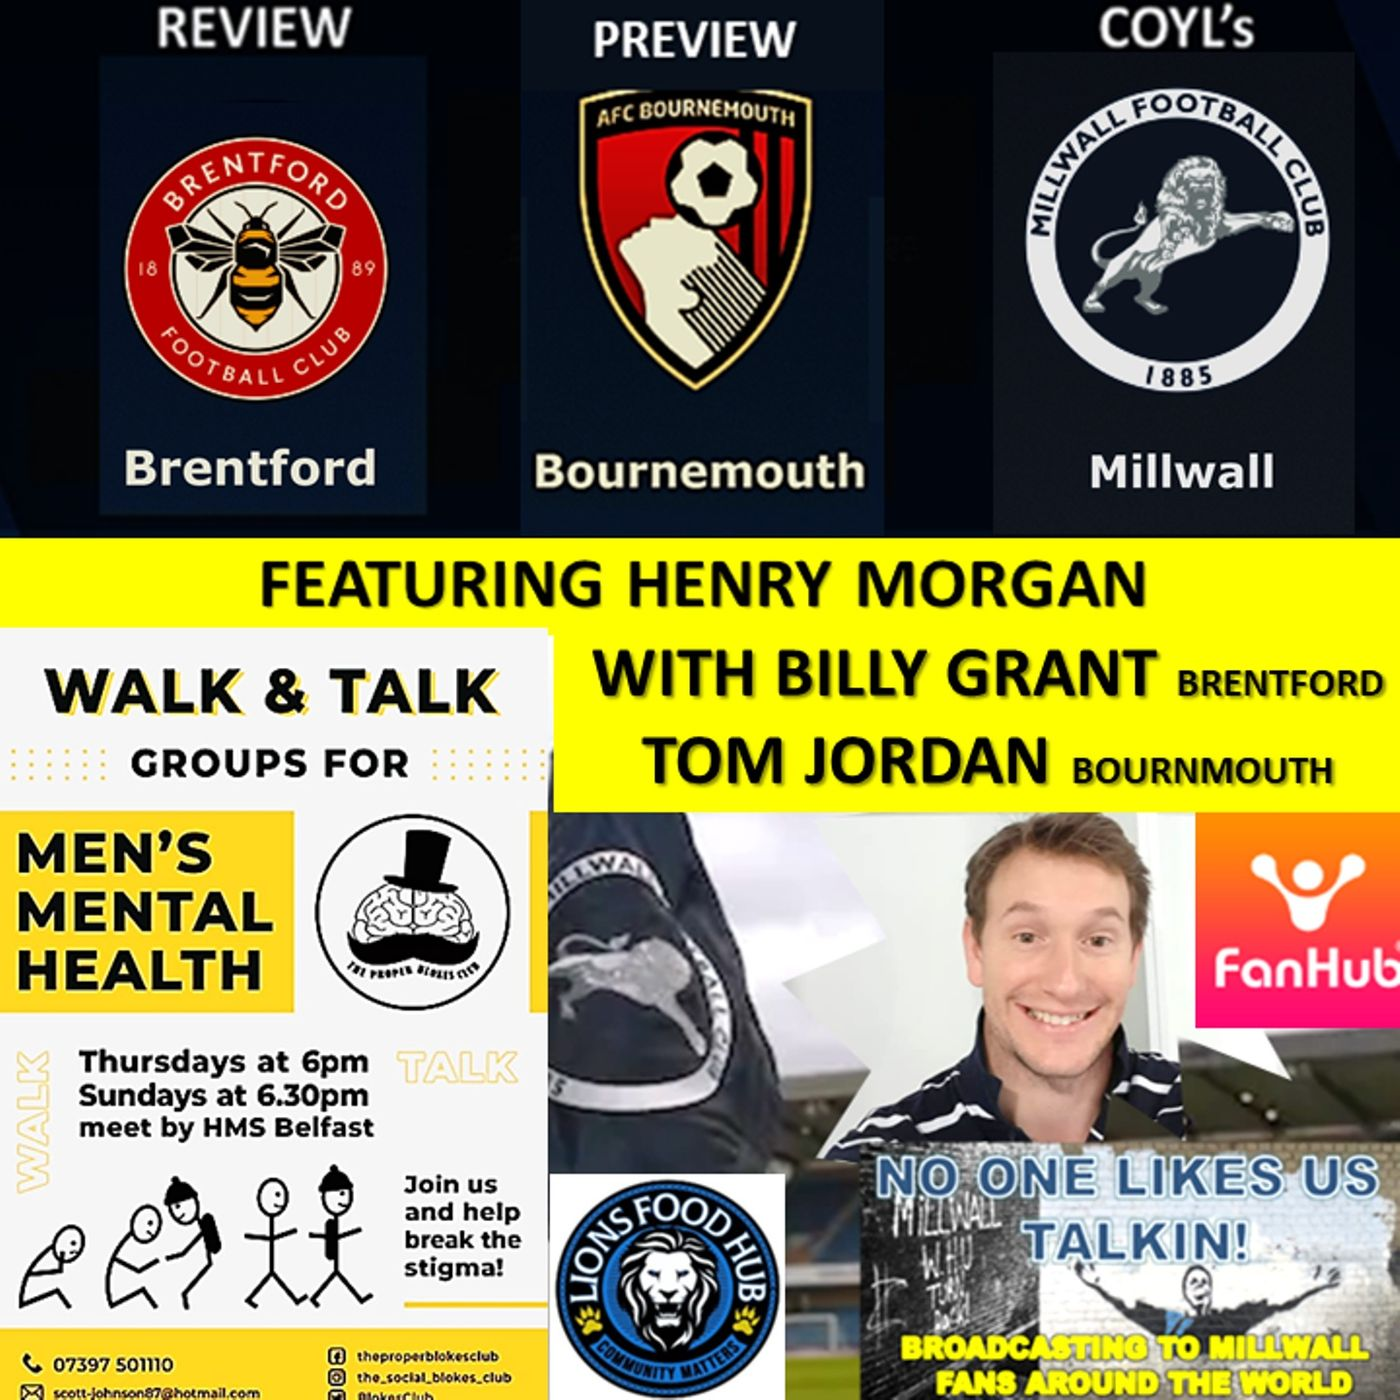 Henry Morgan Reviews Brentford with Billy Grant and Previews Bournemouth with Tom Jordan 200421